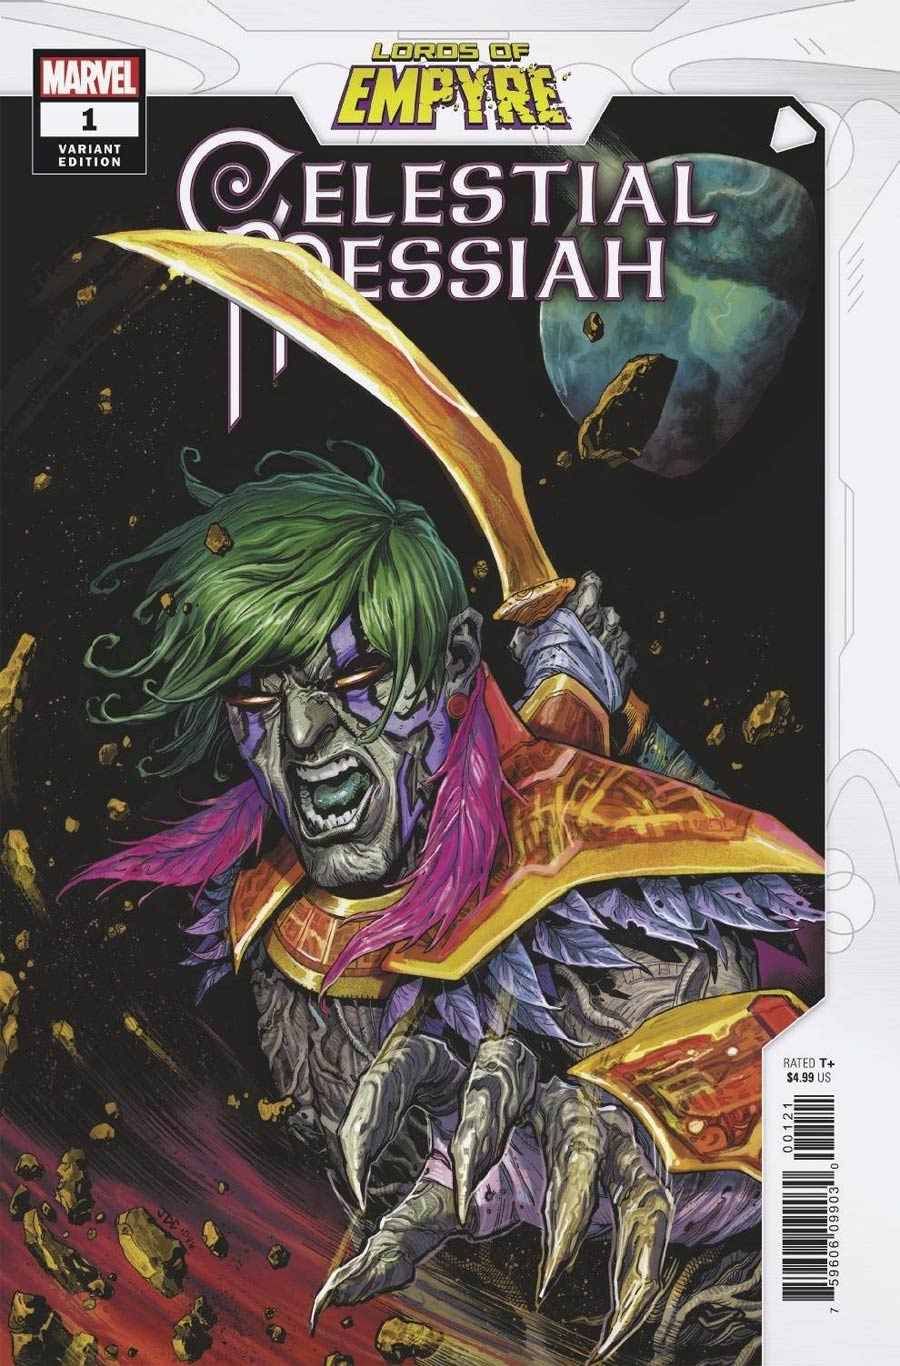 Lords Of Empyre Celestial Messiah One Shot Cover B Variant Josh Cassara Cover